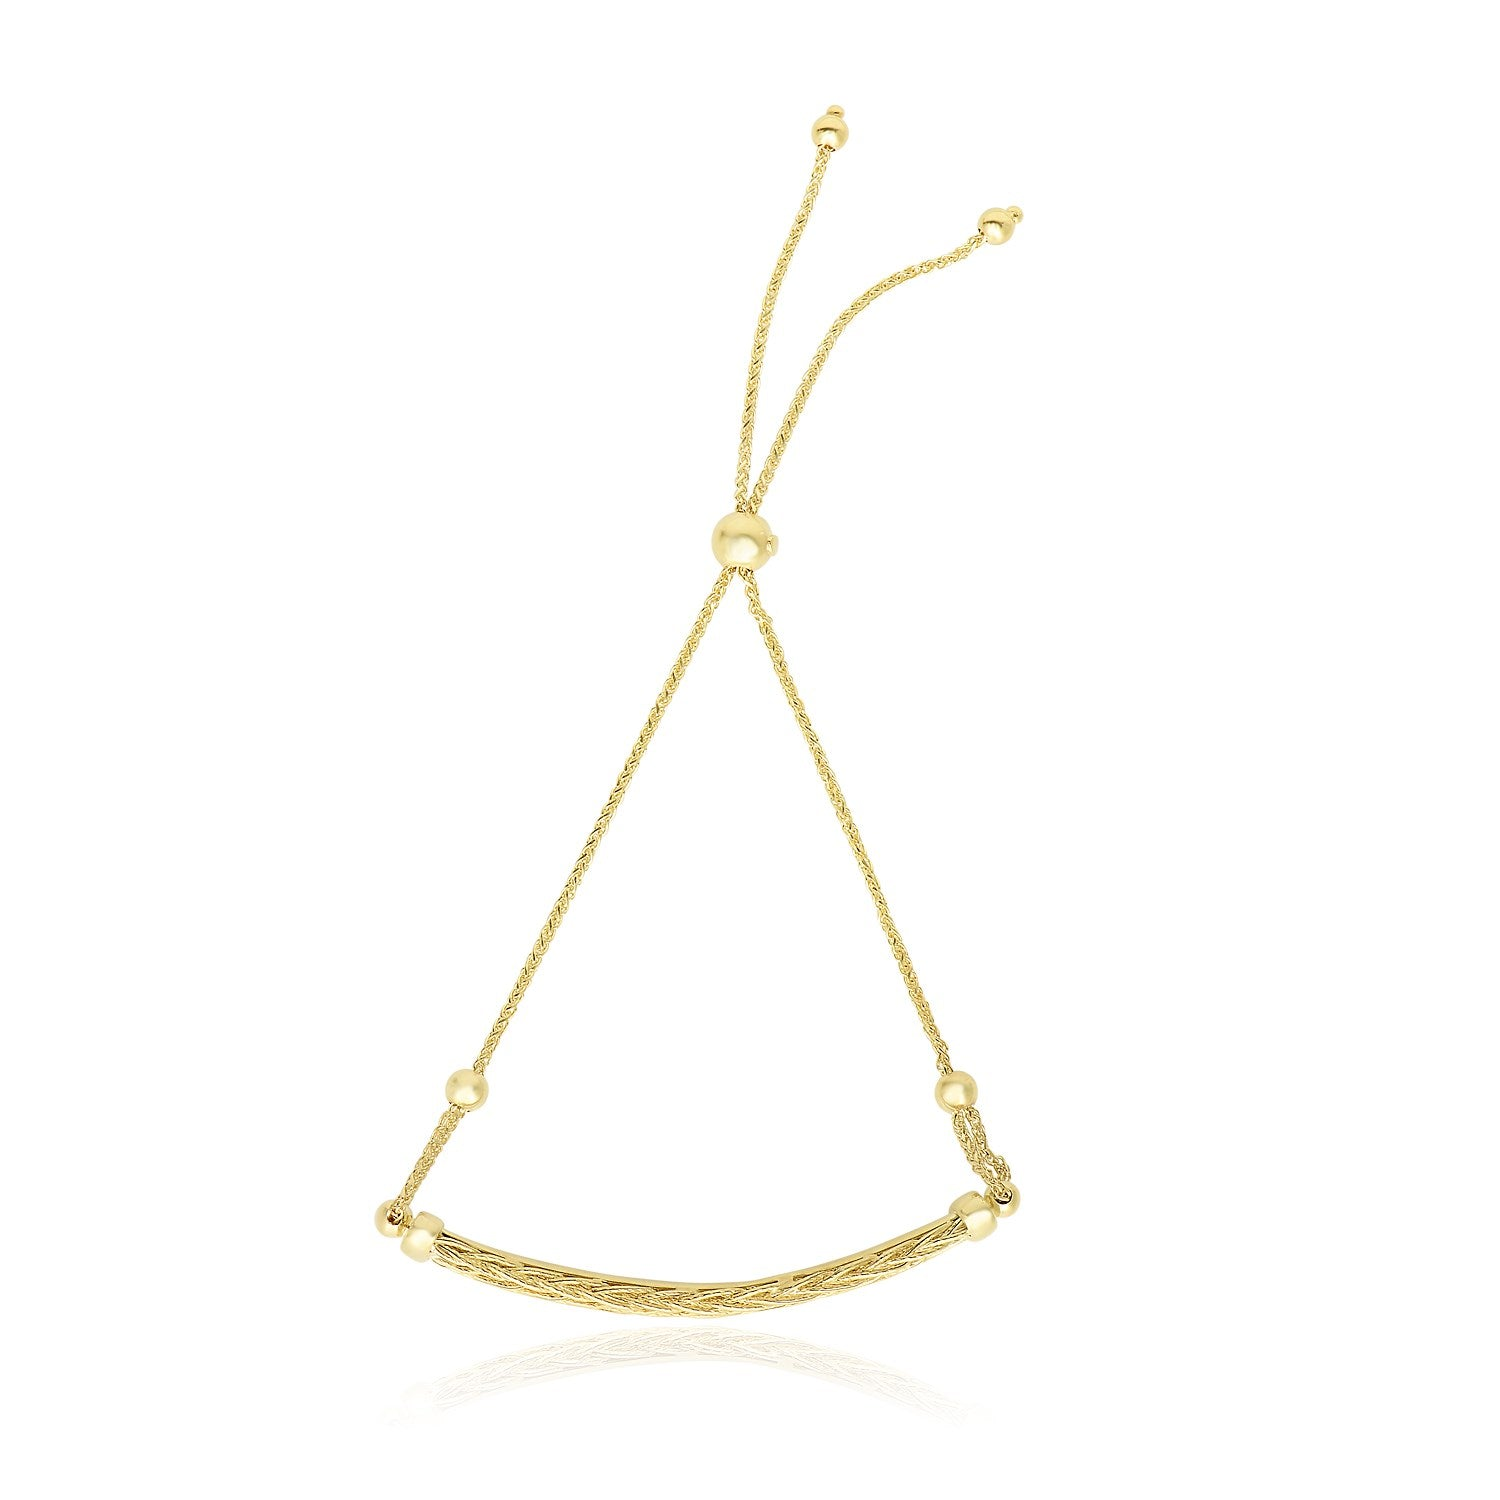 14k Yellow Gold Curved Bar and Chain Adjustable Lariat Bracelet